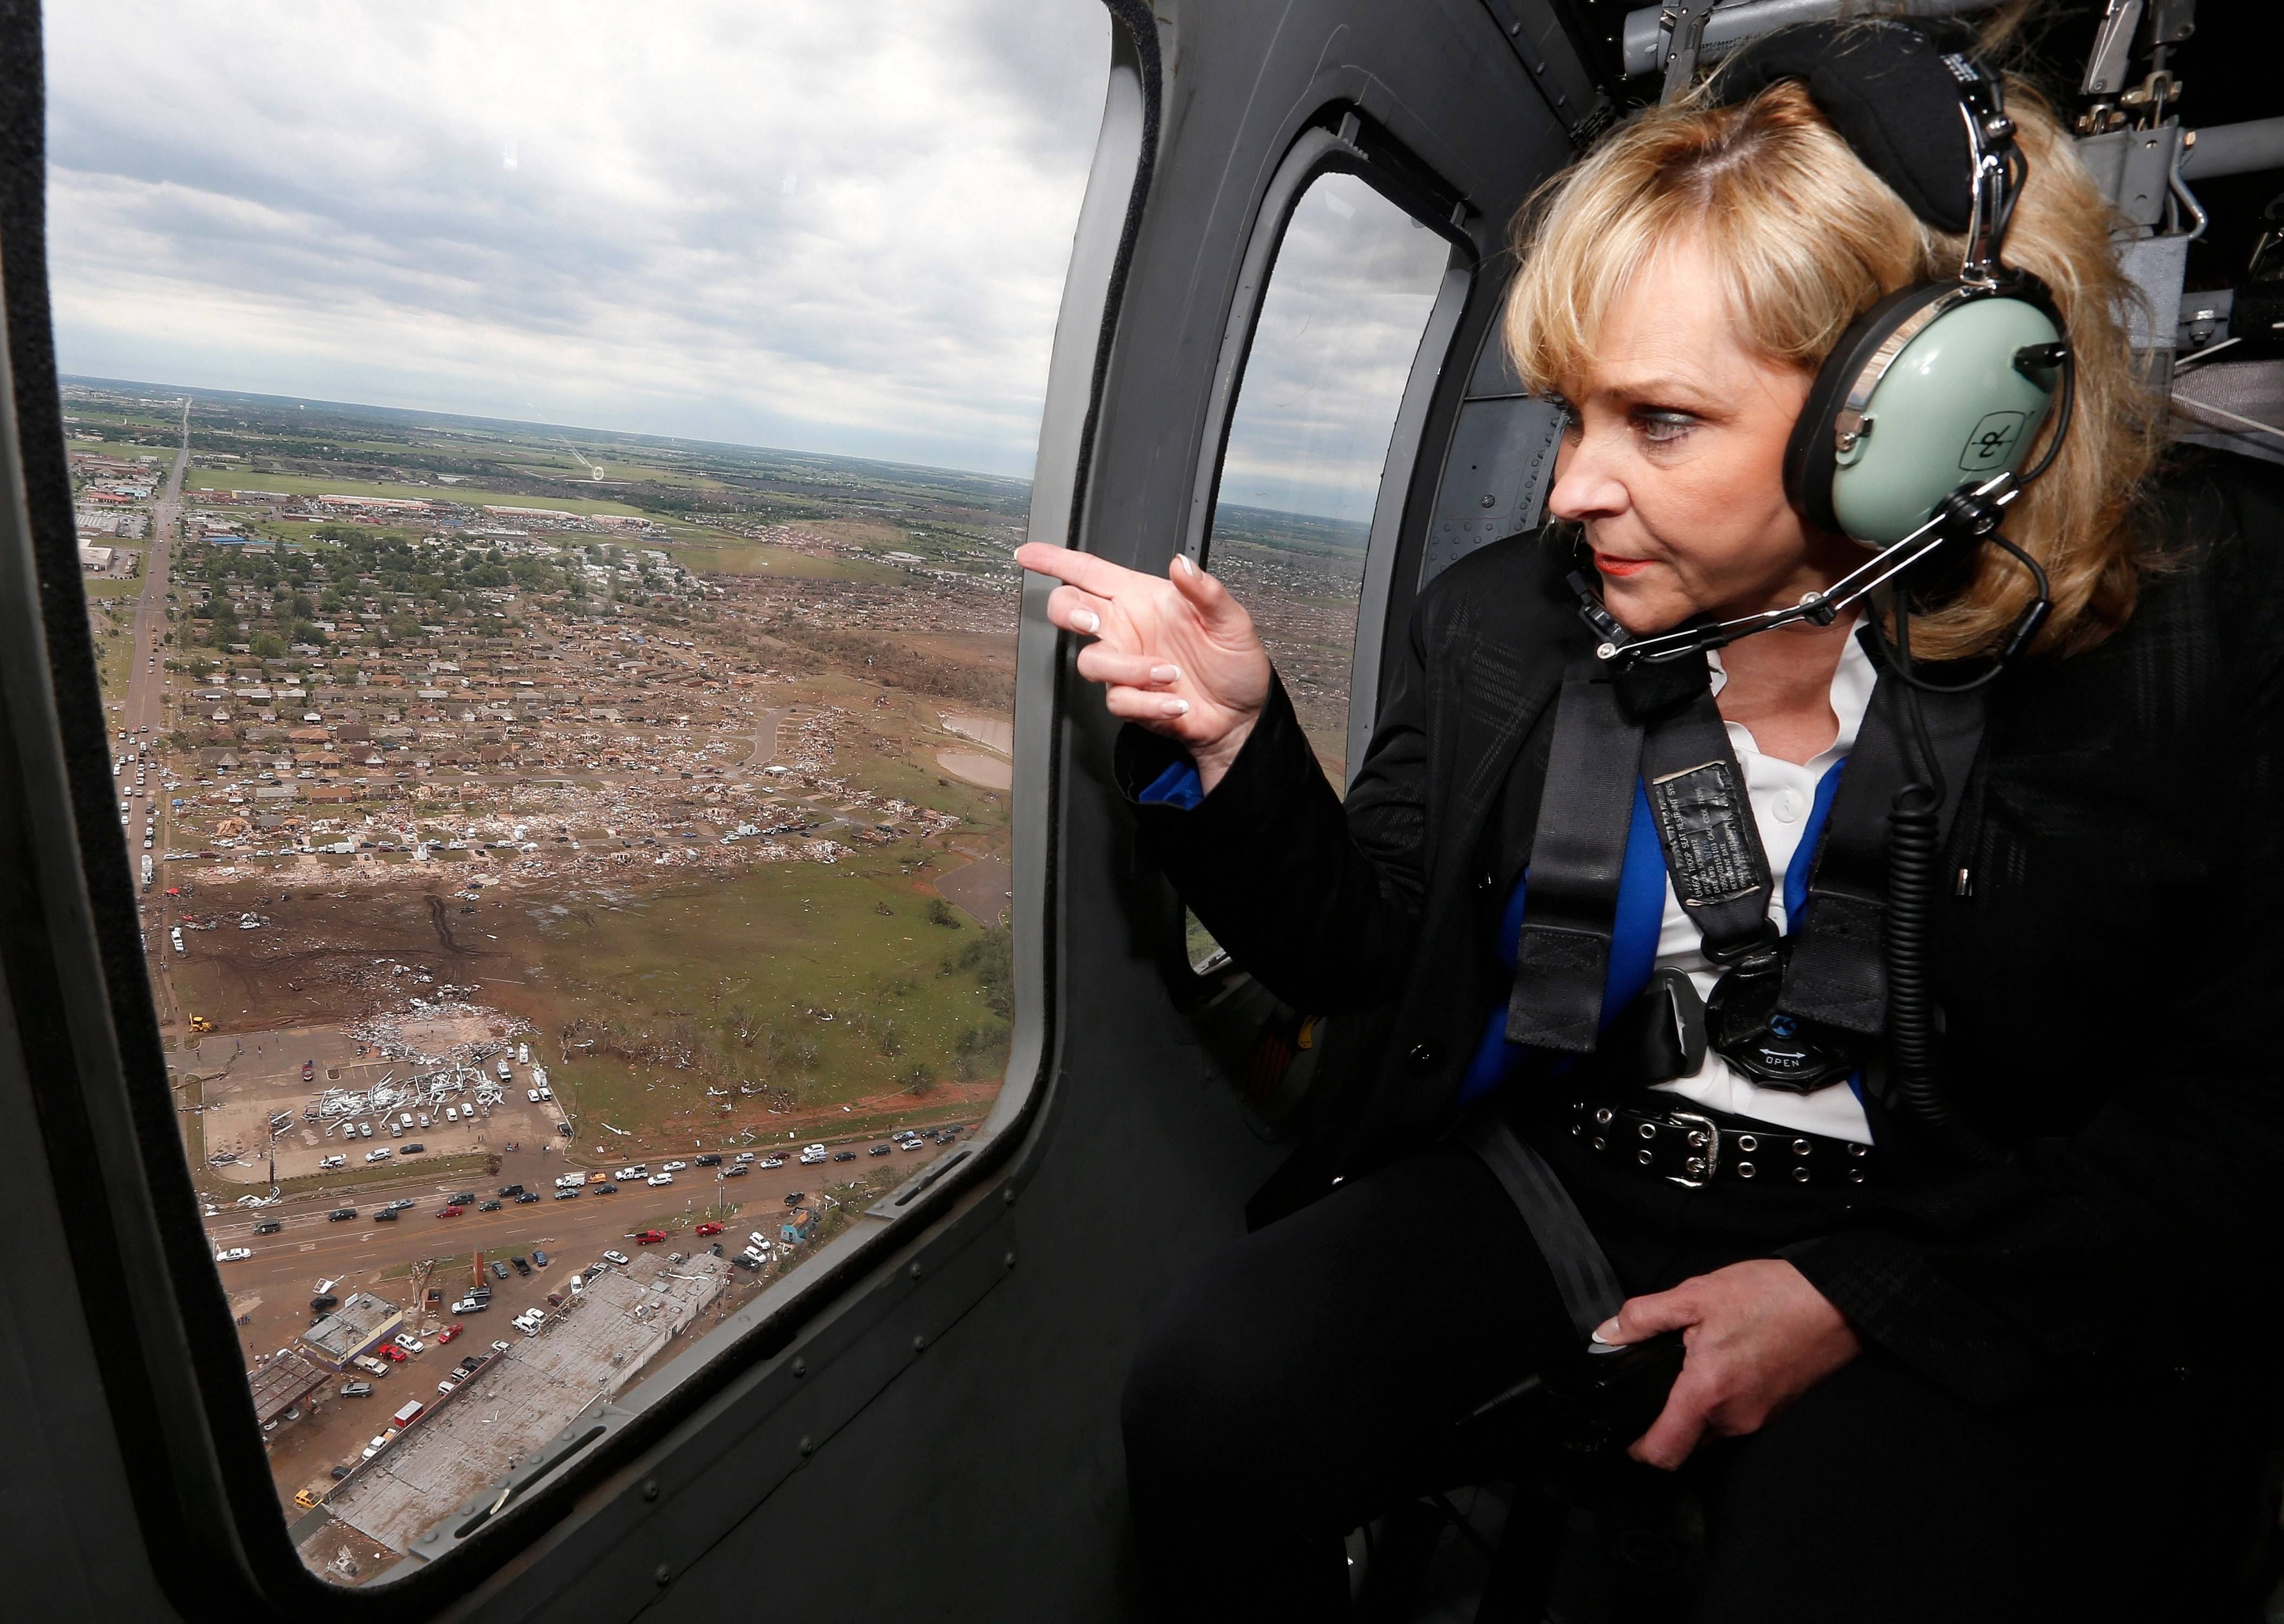 Oklahoma Gov. Mary Fallin looks out the window of a National Guard helicopter as she tours the tornado damage in Moore, Okla., Tuesday, May 21, 2013.